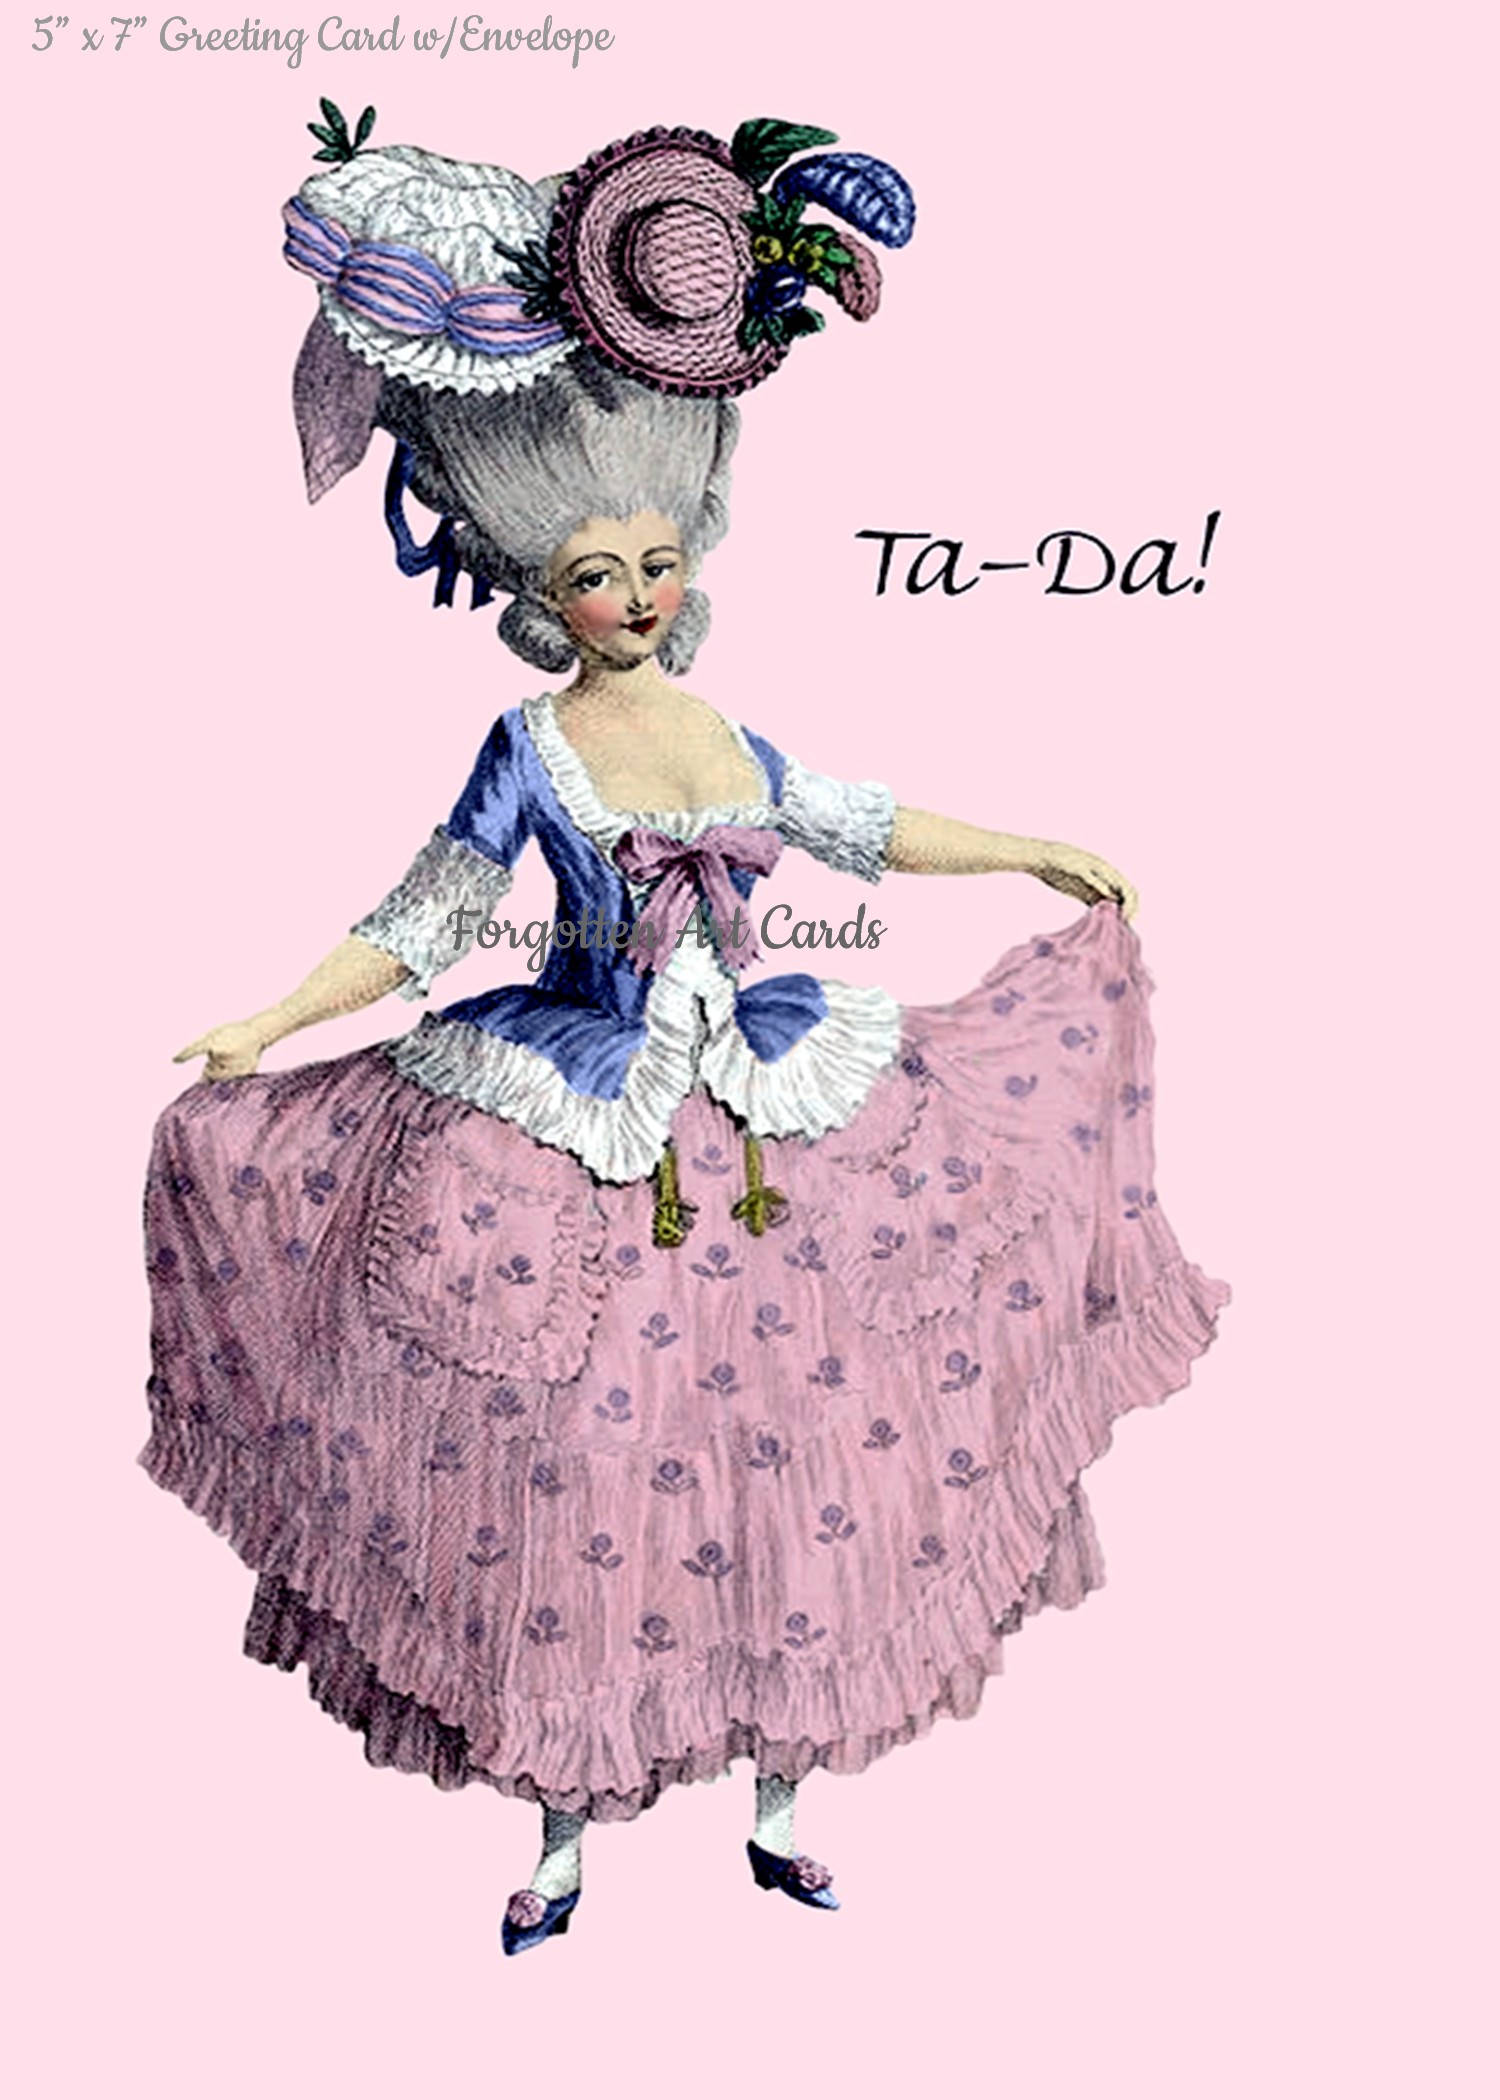 Ta Da 5 X 7 Greeting Card Wenvelope Pink Lady Card Marie